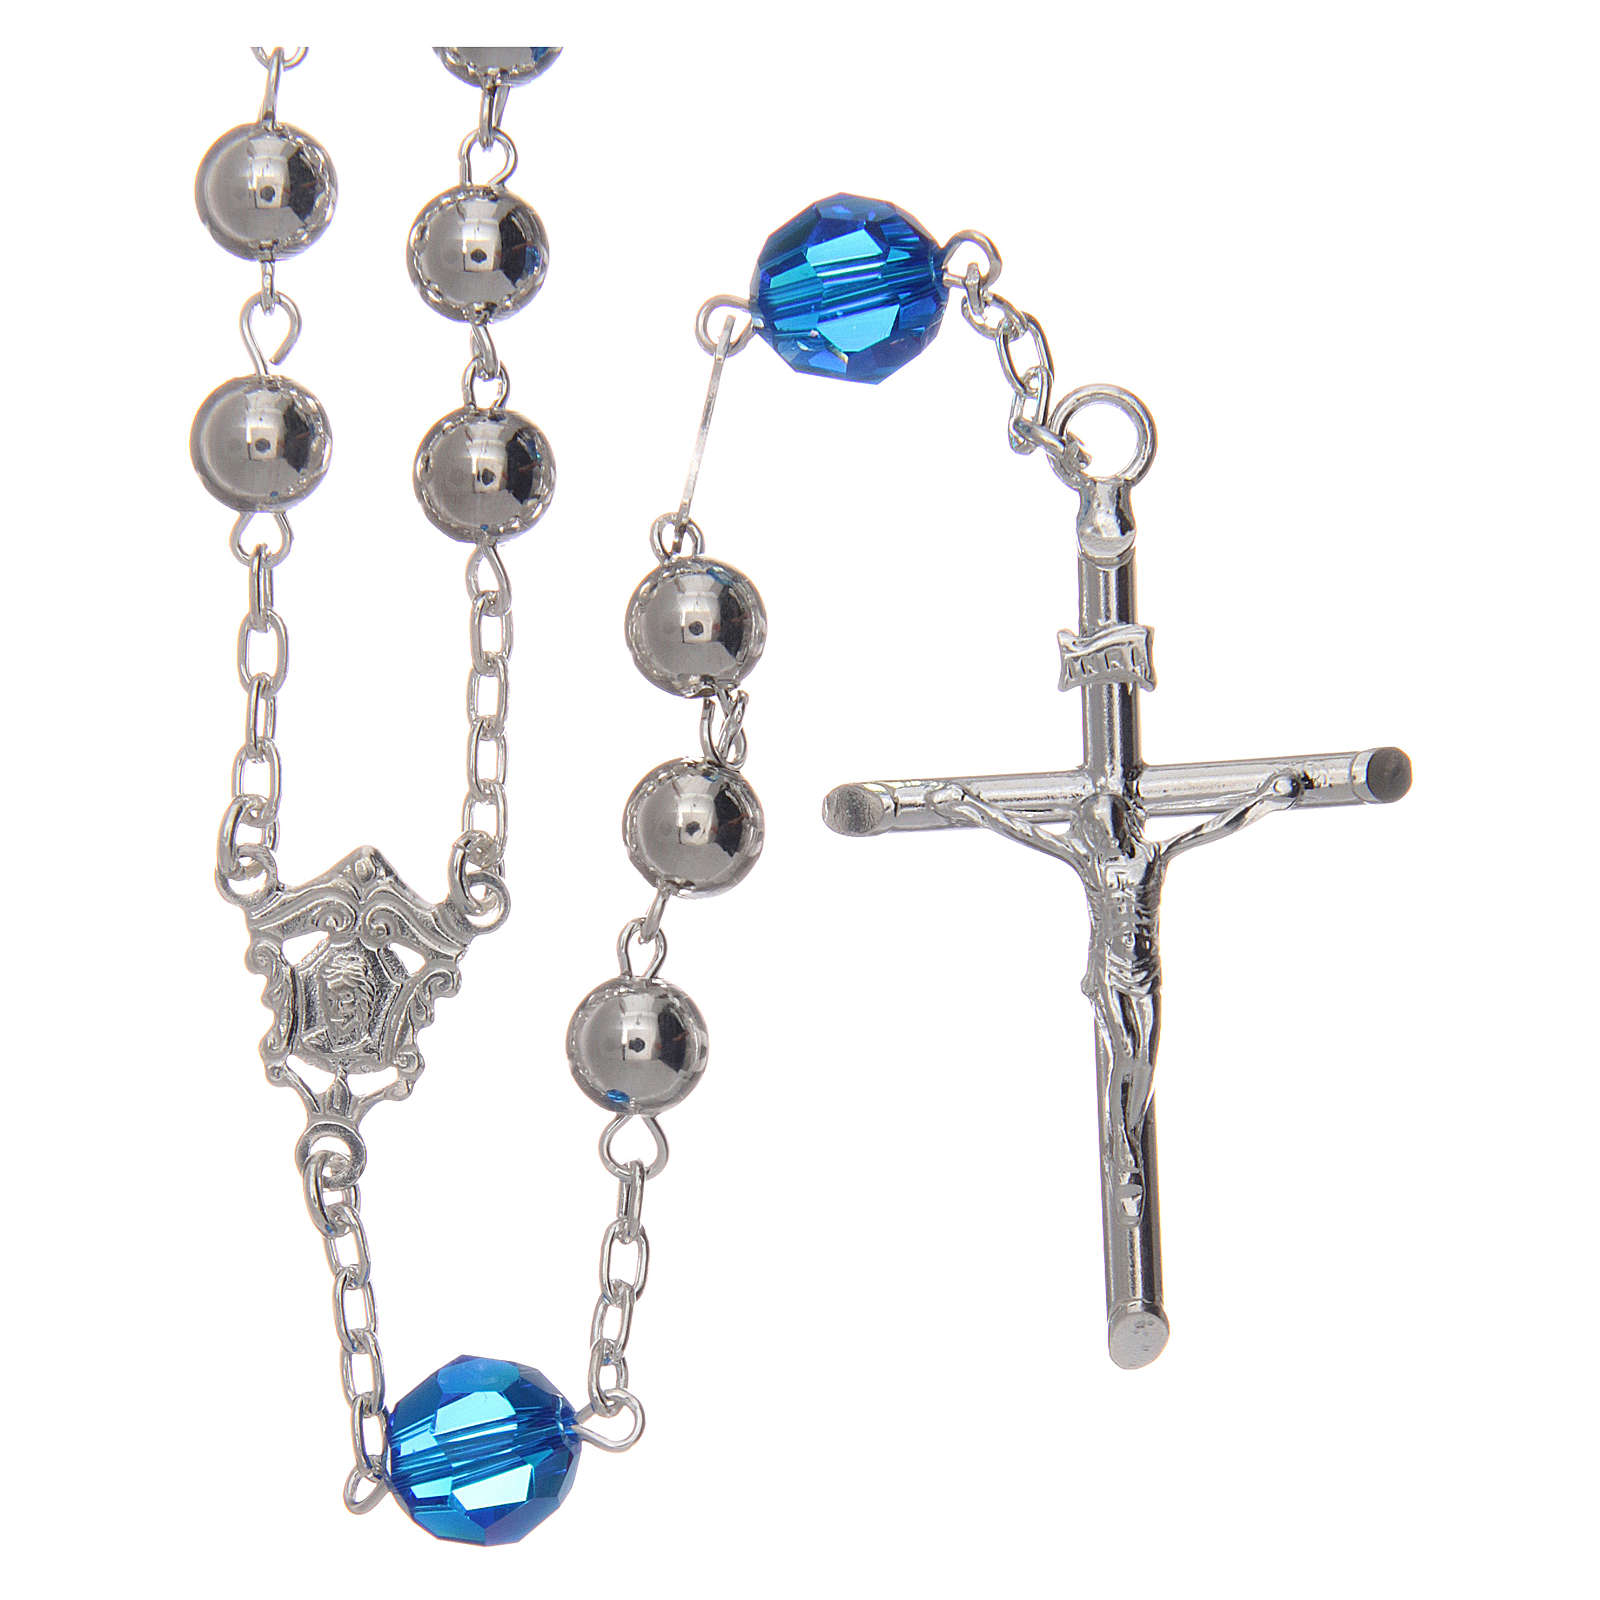 Rosary beads in 800 silver, 6mm and pater beads in blue Swarovski 4